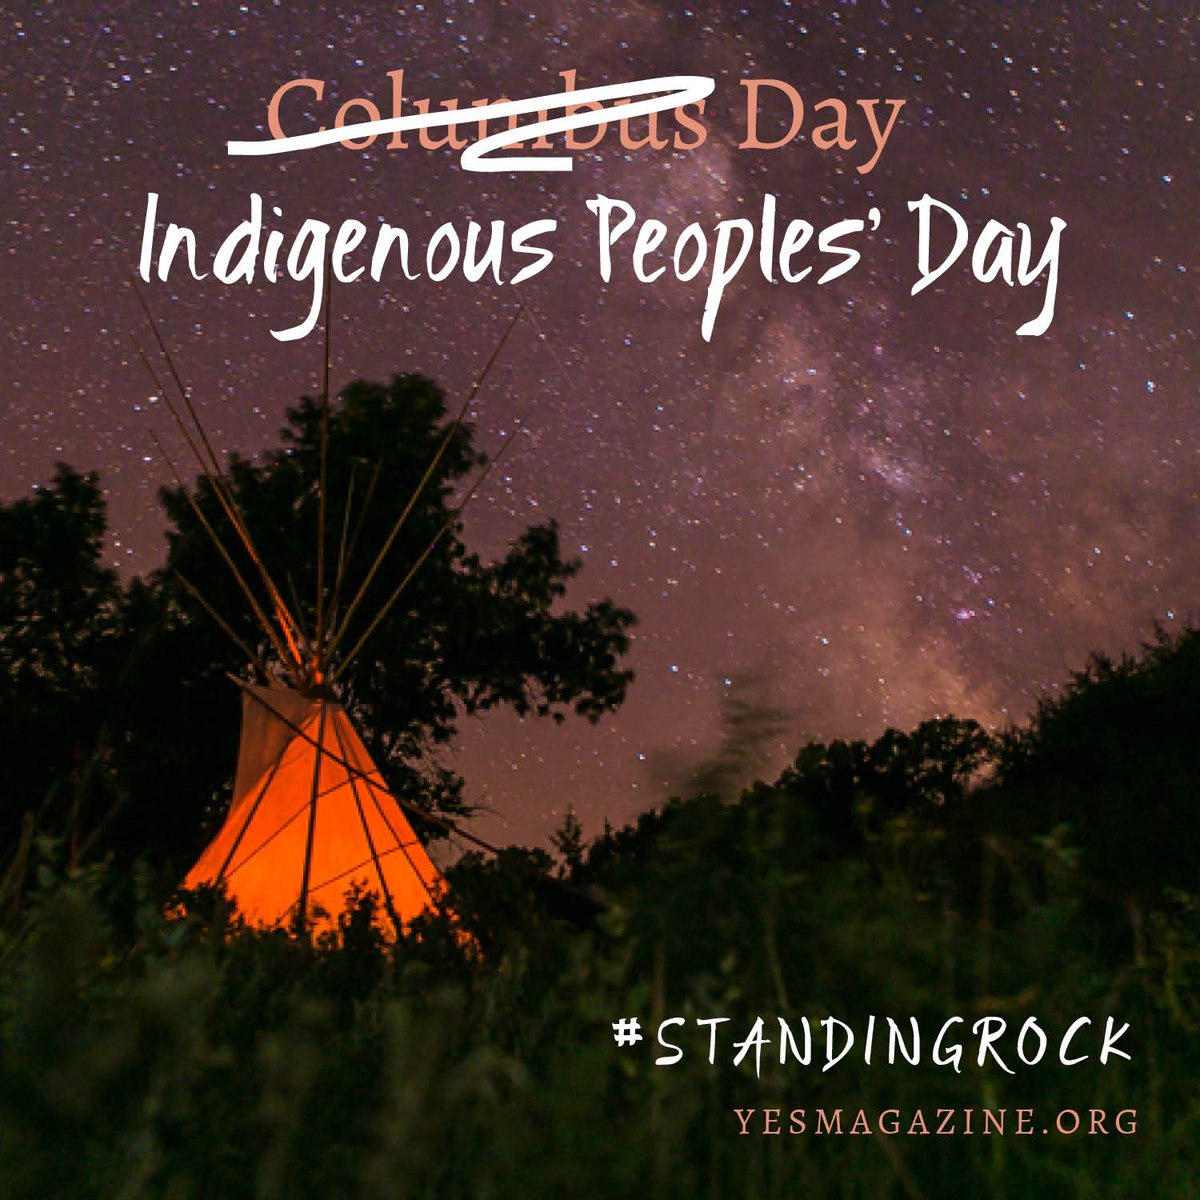 Retweet if you think #IndigenousPeoplesDay should replace #ColumbusDay across the country! https://t.co/rBm0Av5kds